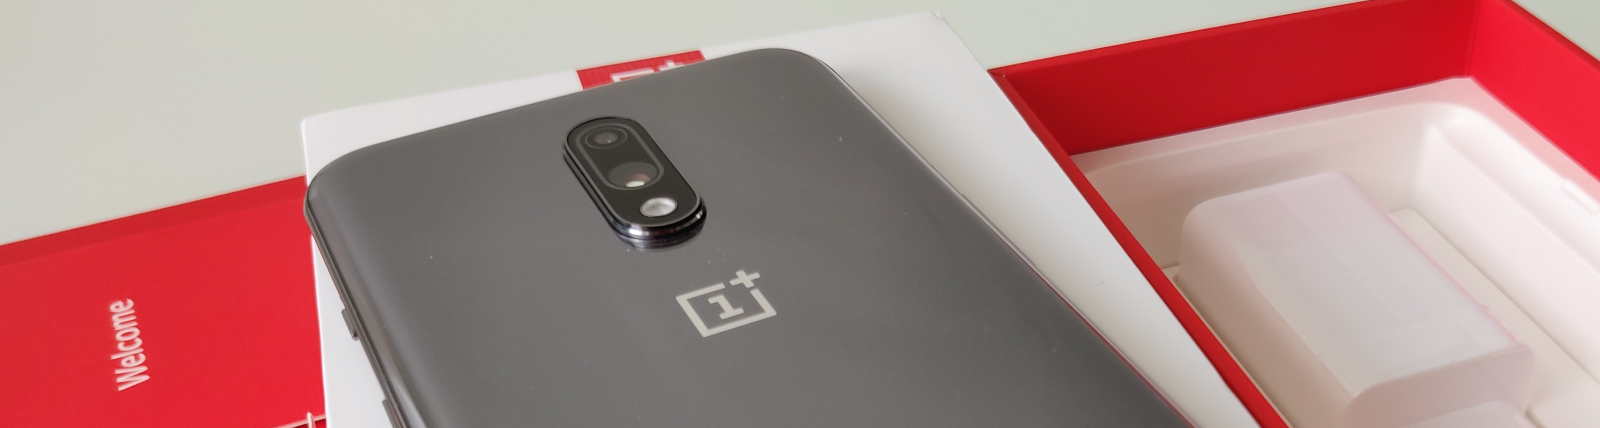 OnePlus 7 banner image